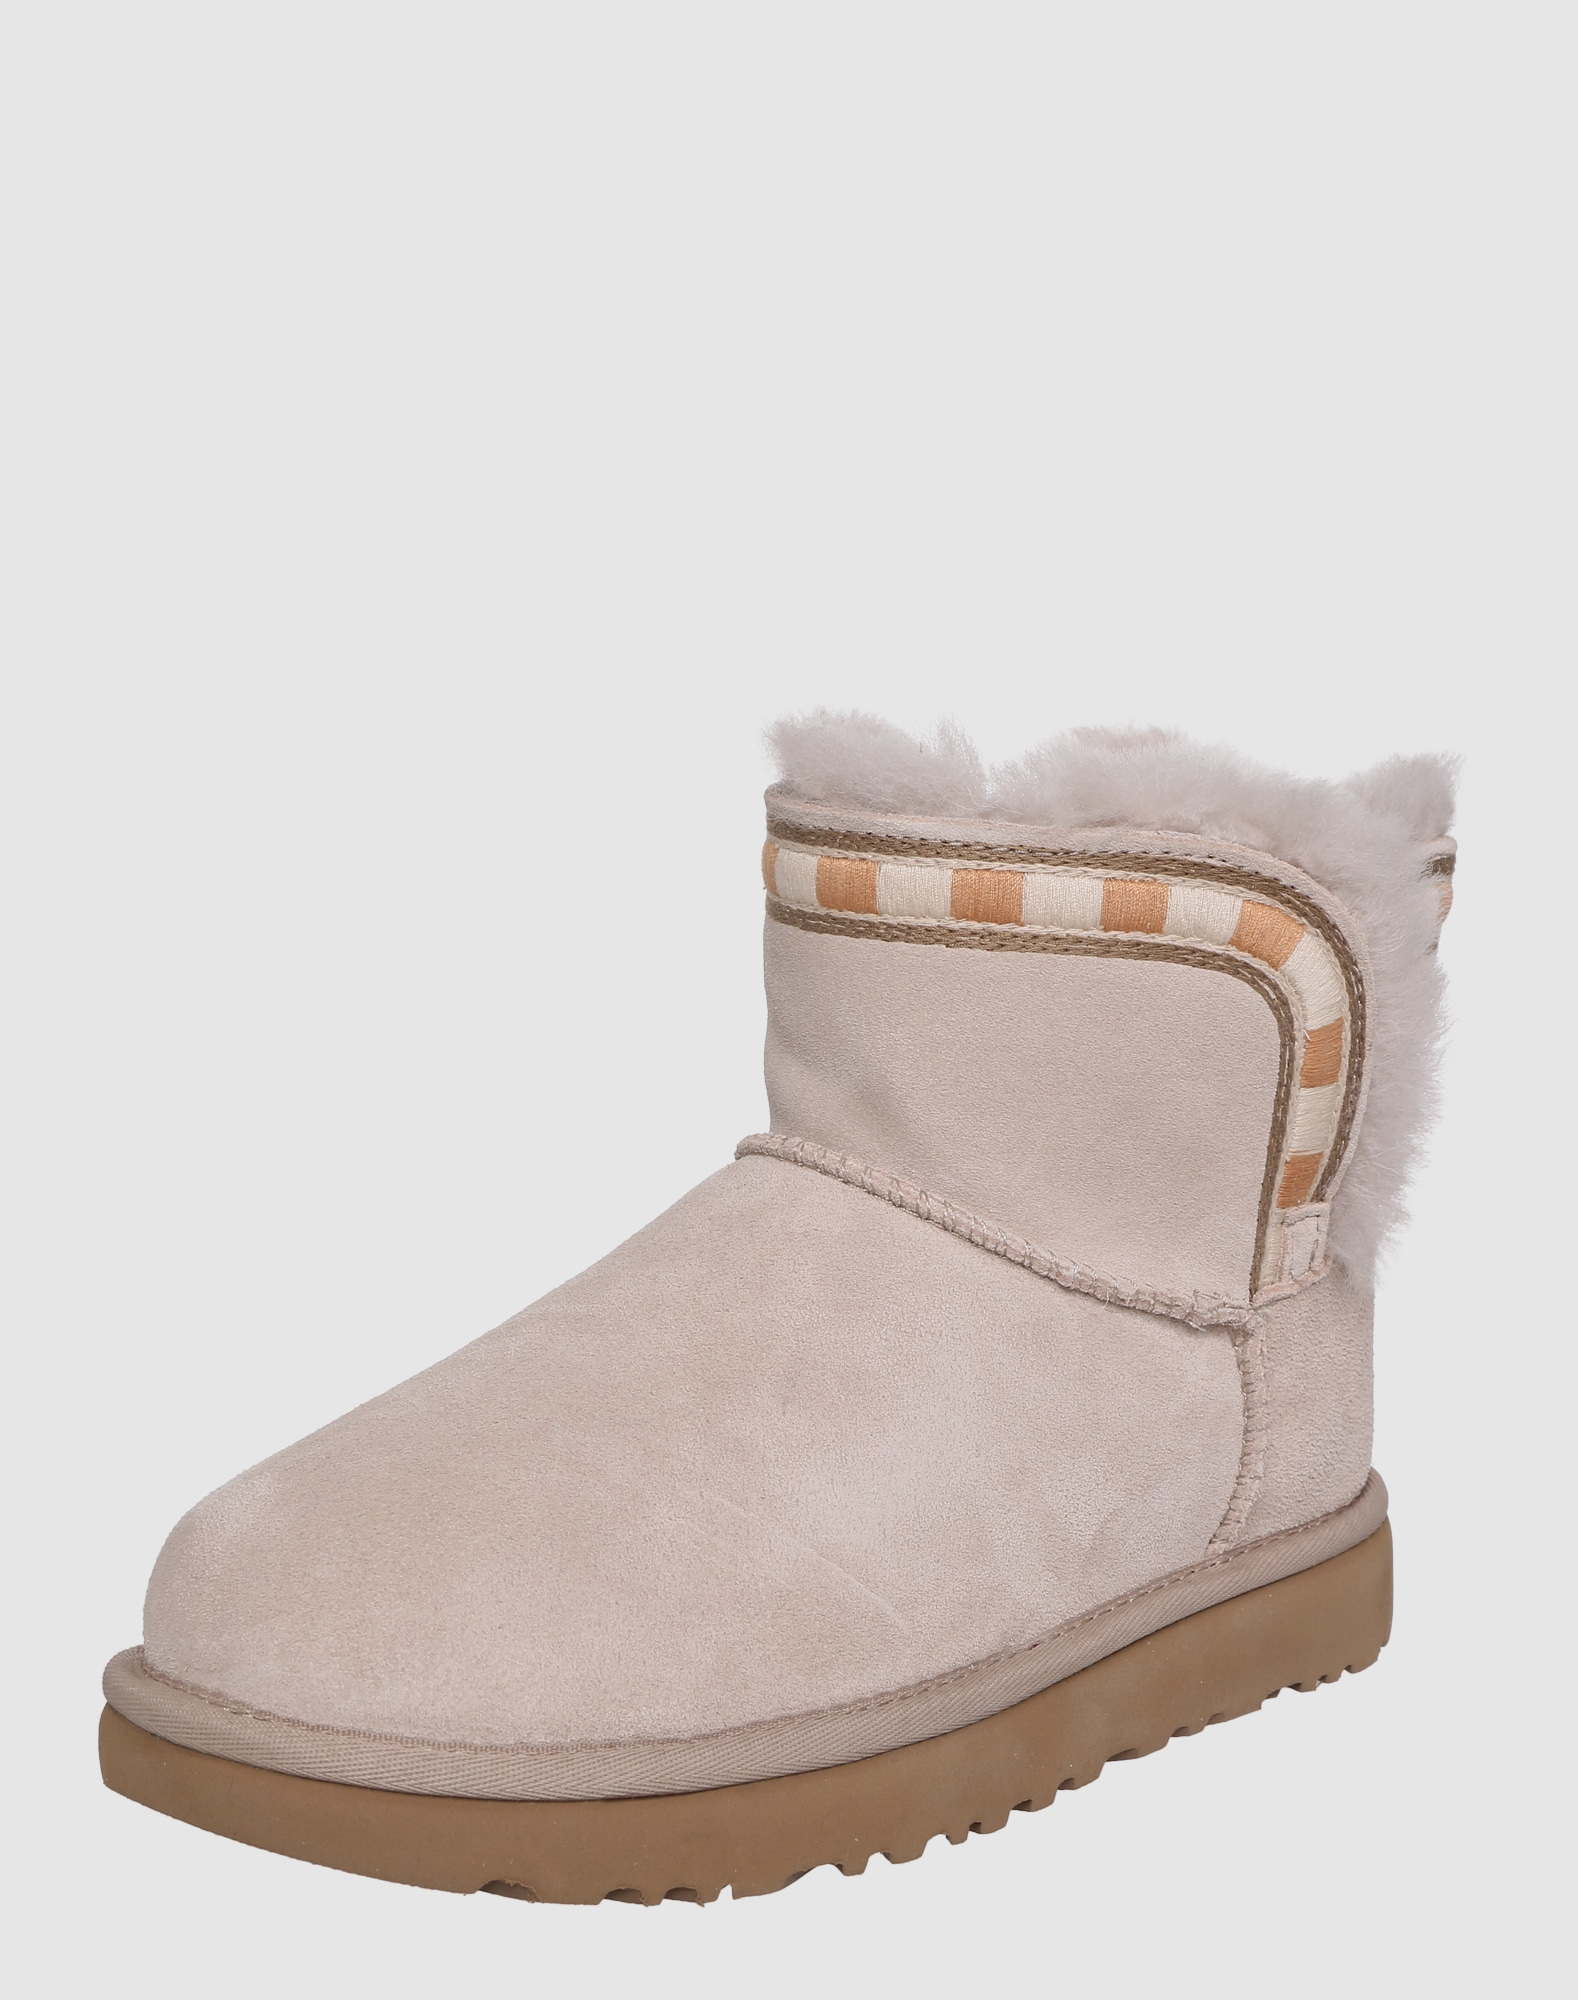 ugg snowboot 39 rosamaria embroidery 39 in pink about you. Black Bedroom Furniture Sets. Home Design Ideas